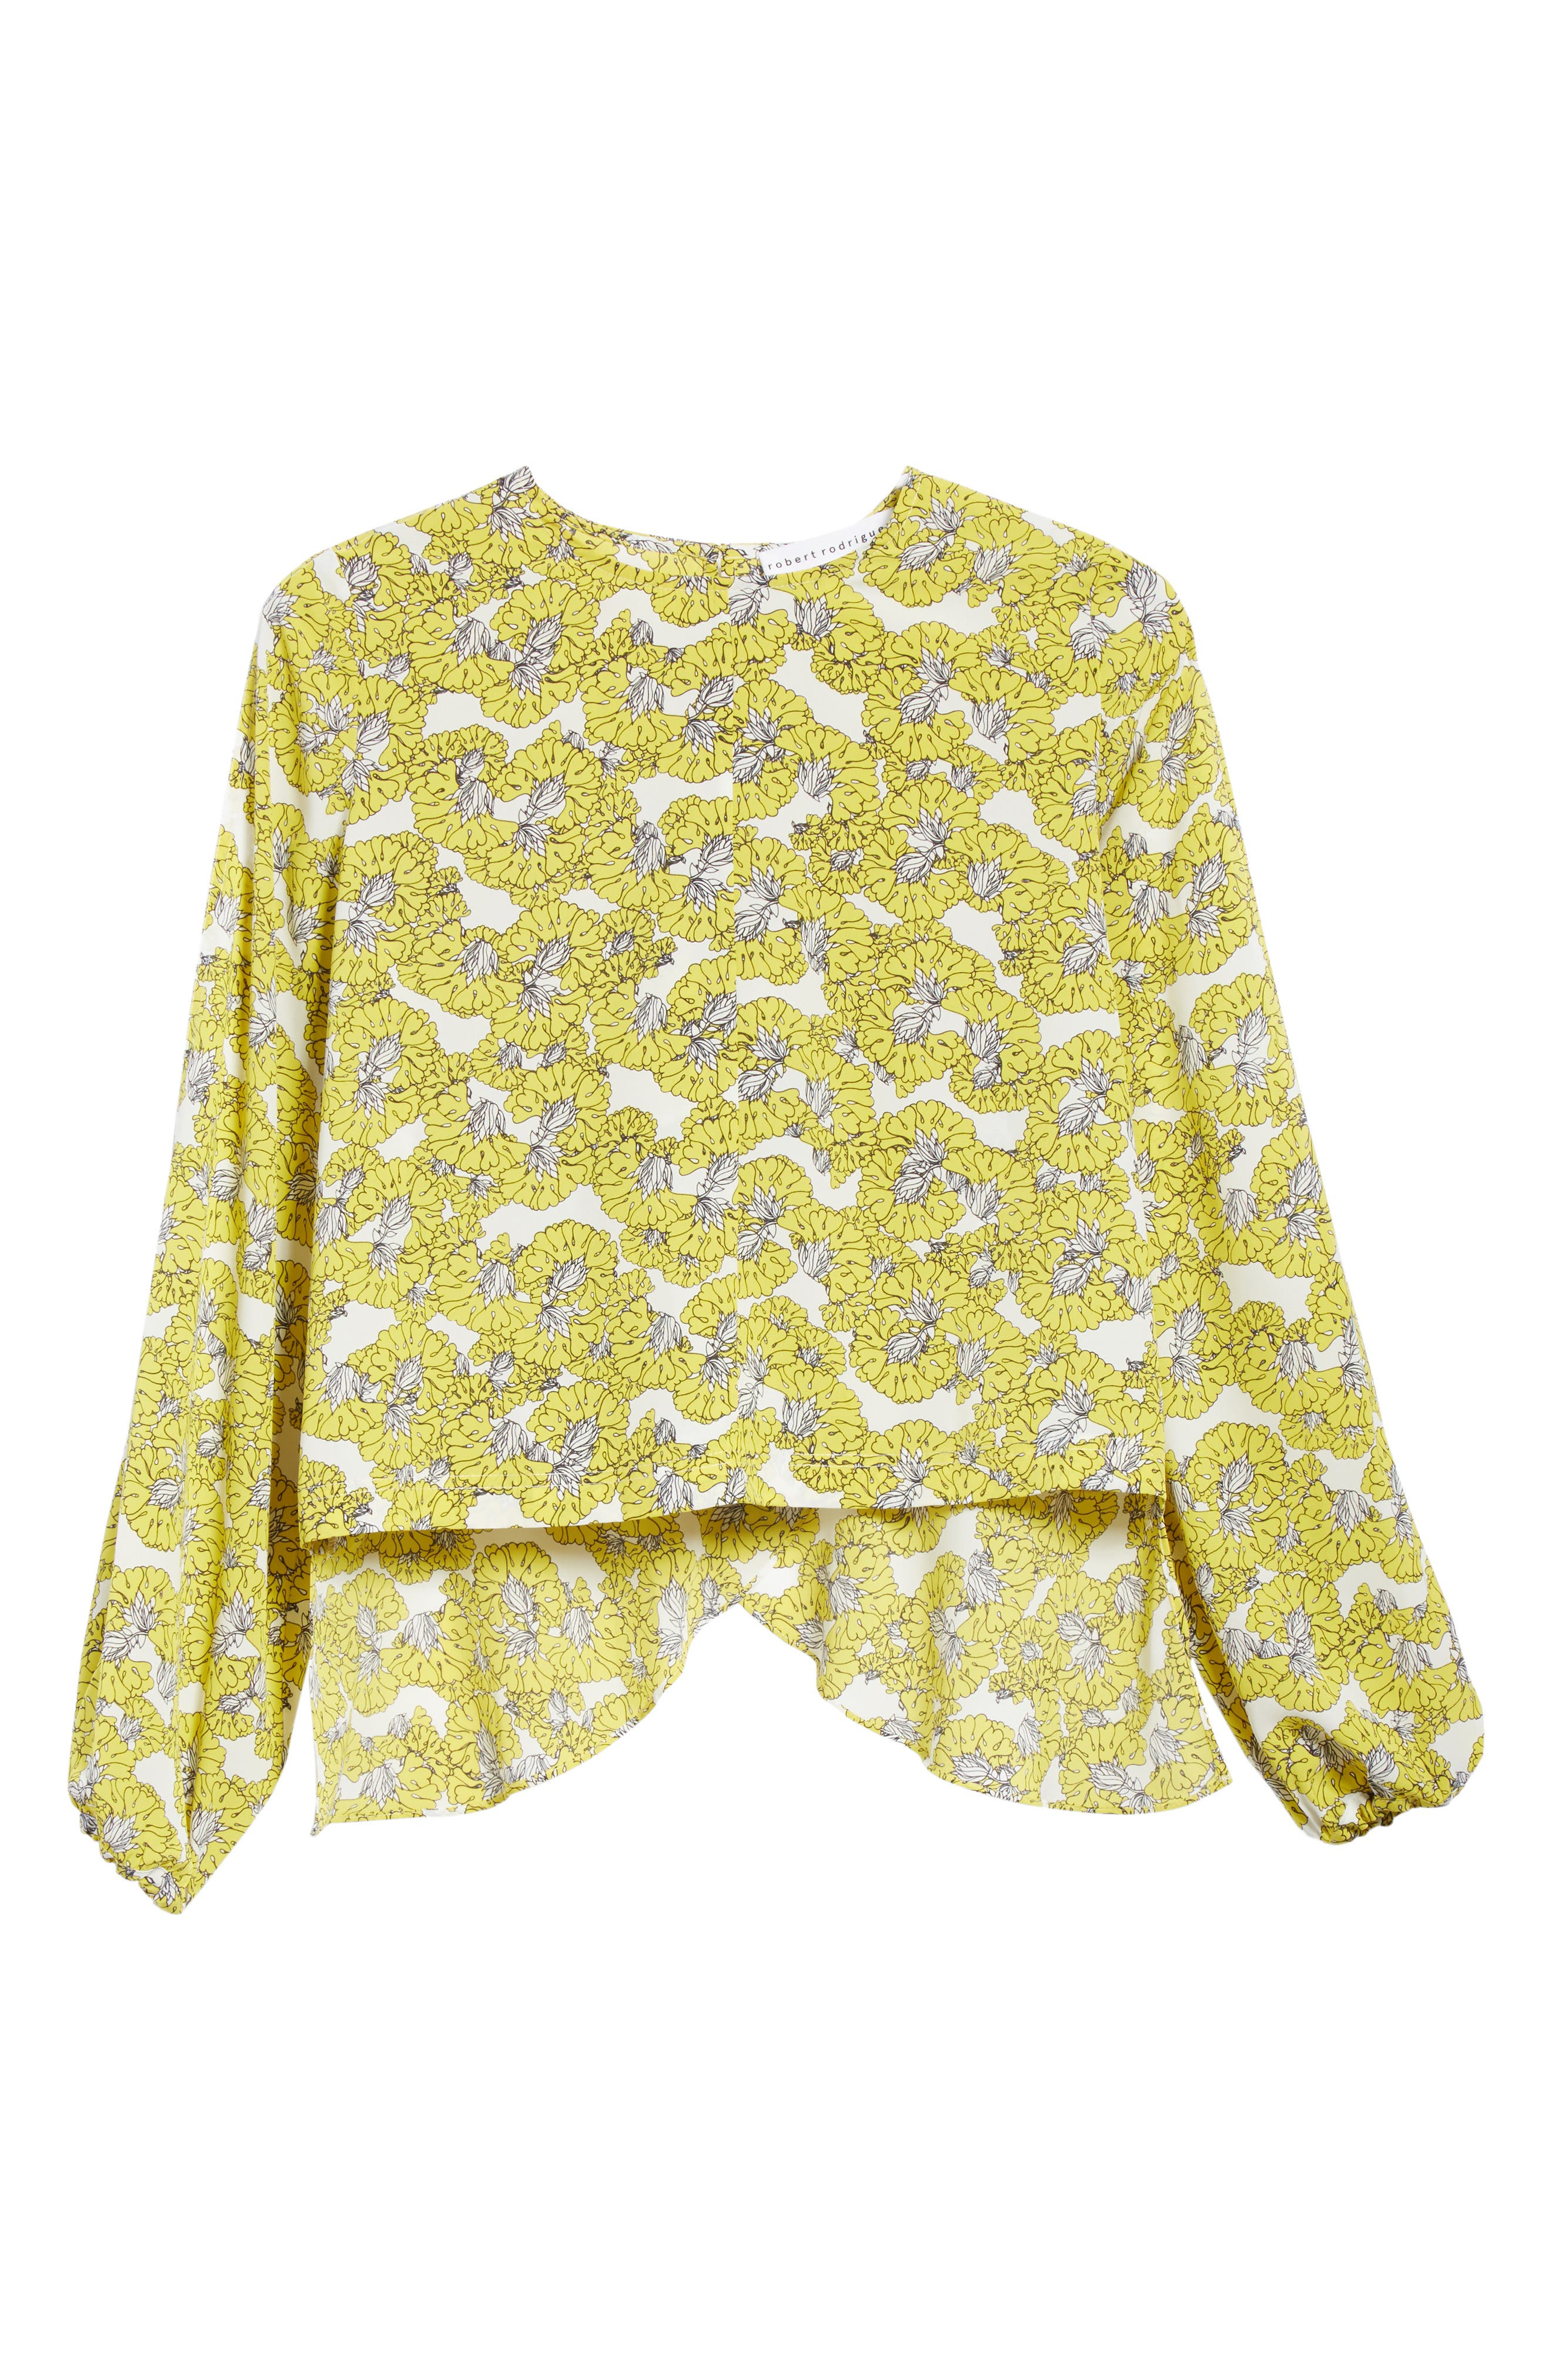 Floral Print Ruffle Back Top,                             Alternate thumbnail 6, color,                             Yellow Floral